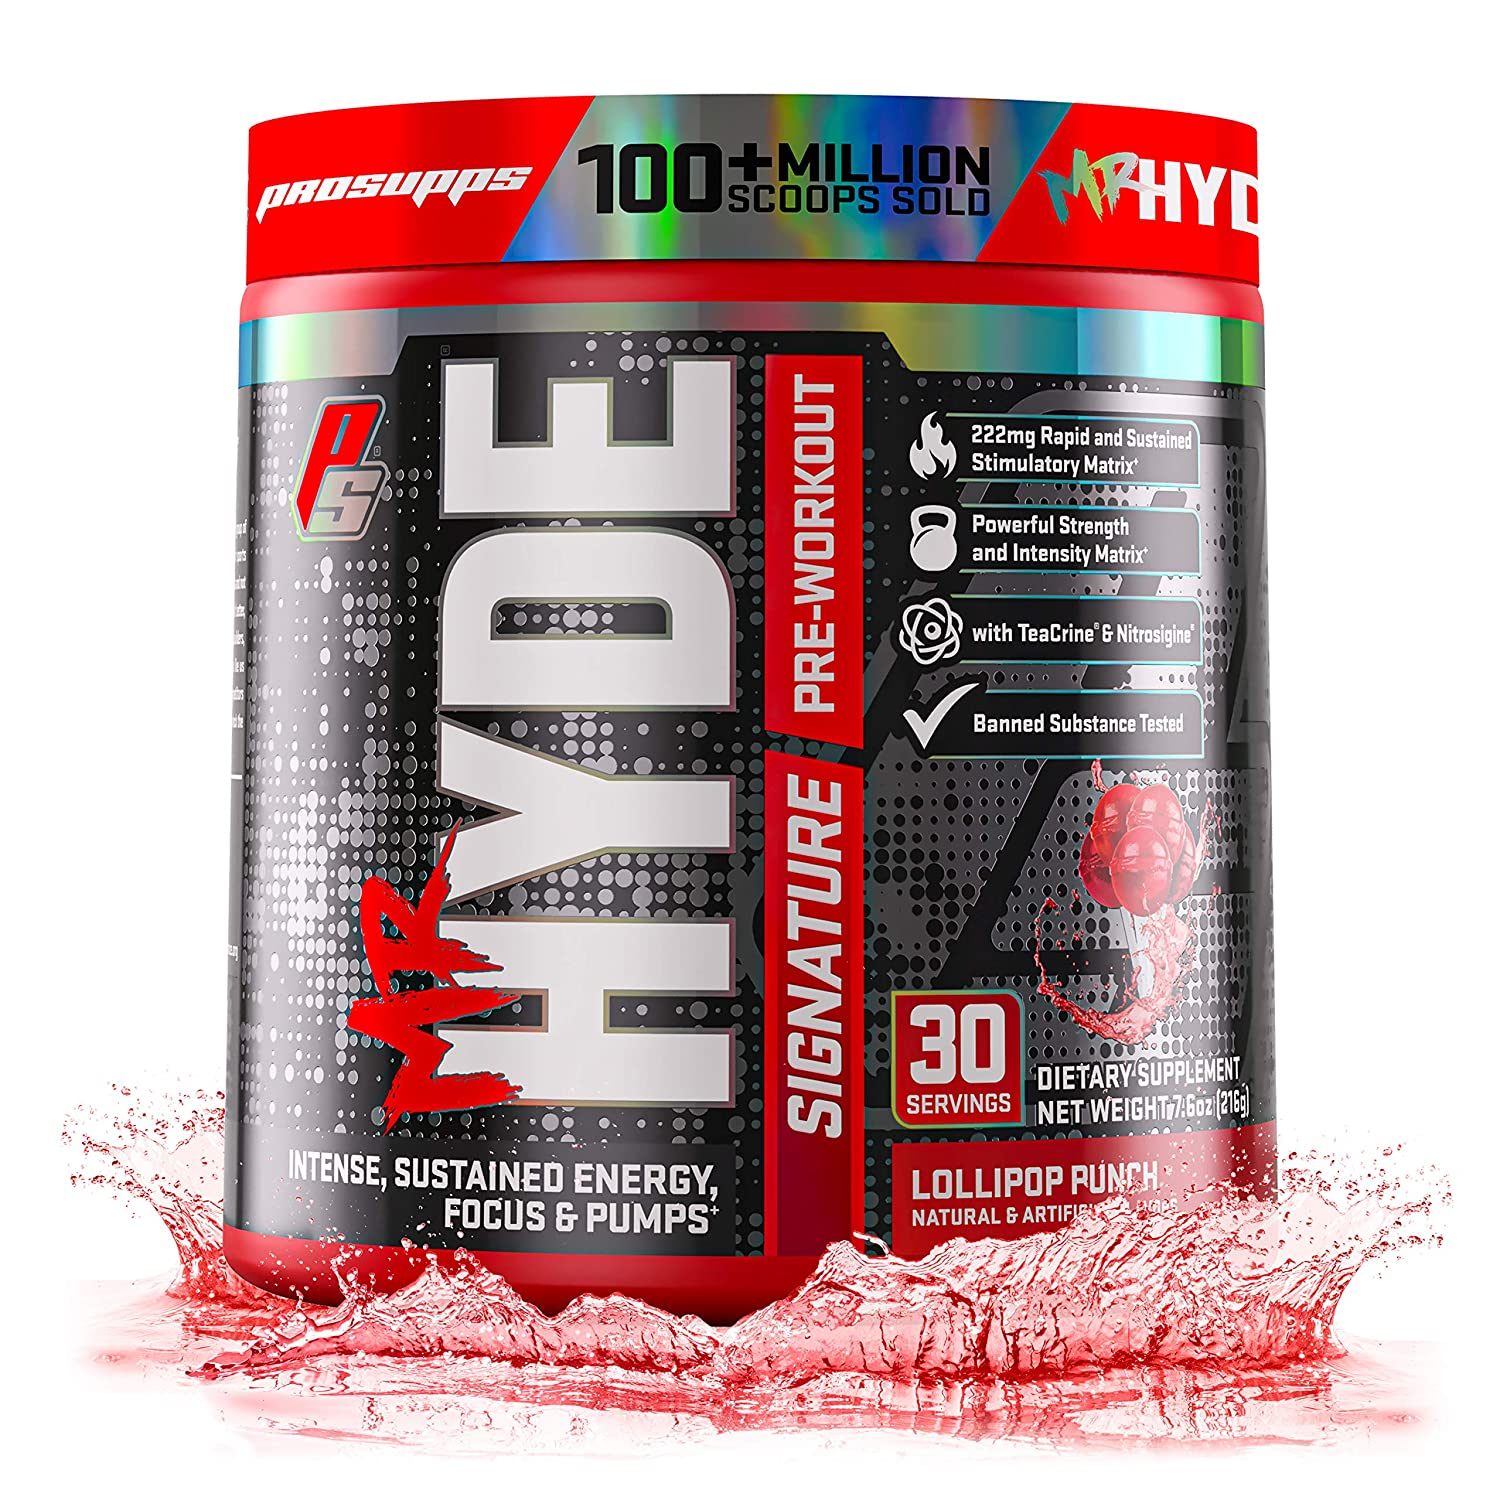 ProSupps Mr. Hyde Signature Series Pre-Workout Energy Nitric Oxide Boosting Drink Sustained Energy, Focus Pumps with Beta Alanine, Creatine, Nitrosigine TeaCrine 30 Servings Lollipop Punch